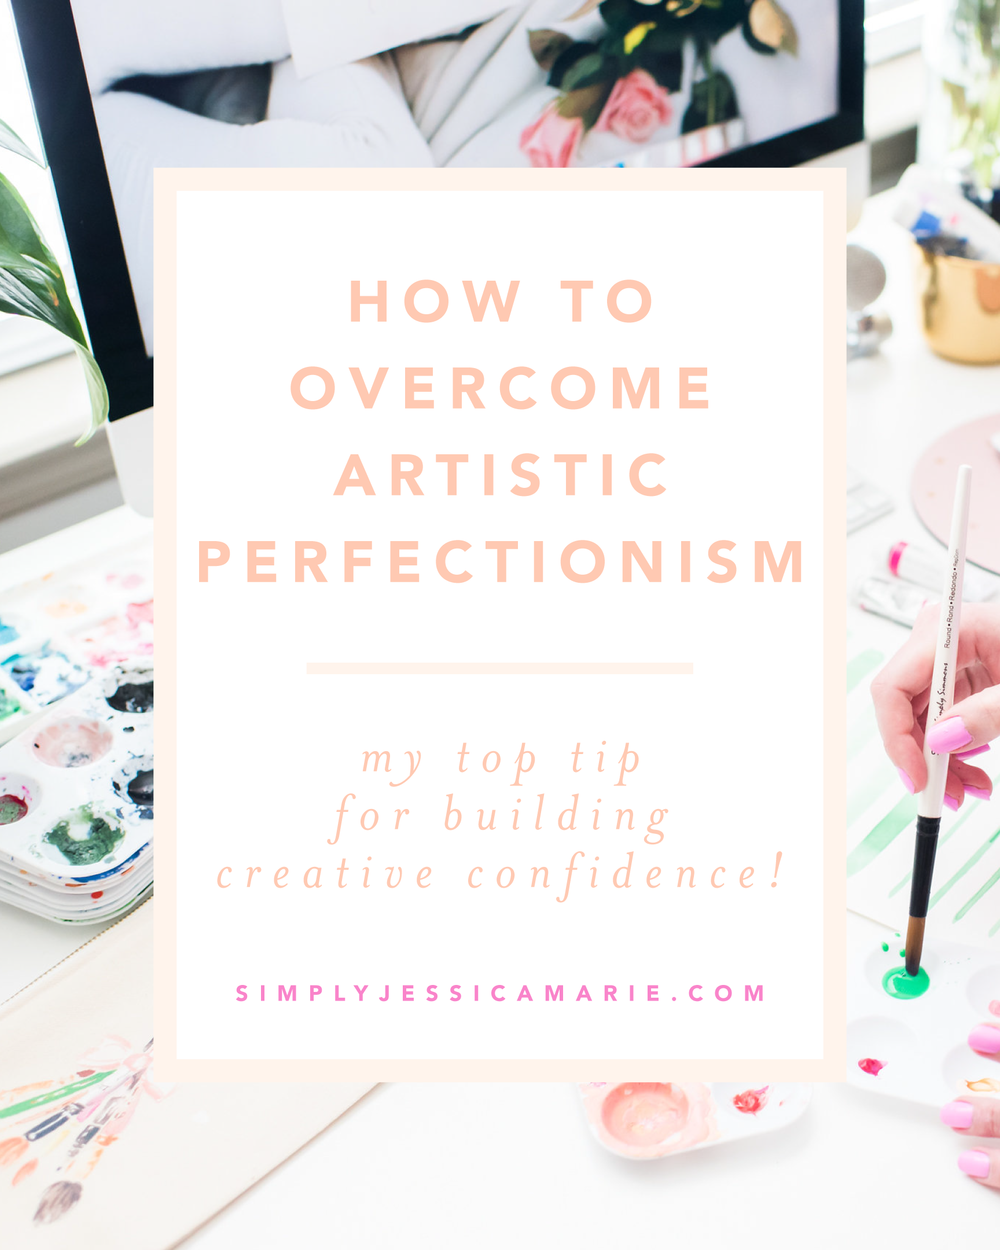 How to overcome artistic perfectionism - my top tip for building creative confidence! By Simply Jessica Marie | Photo by Callie Lindsey